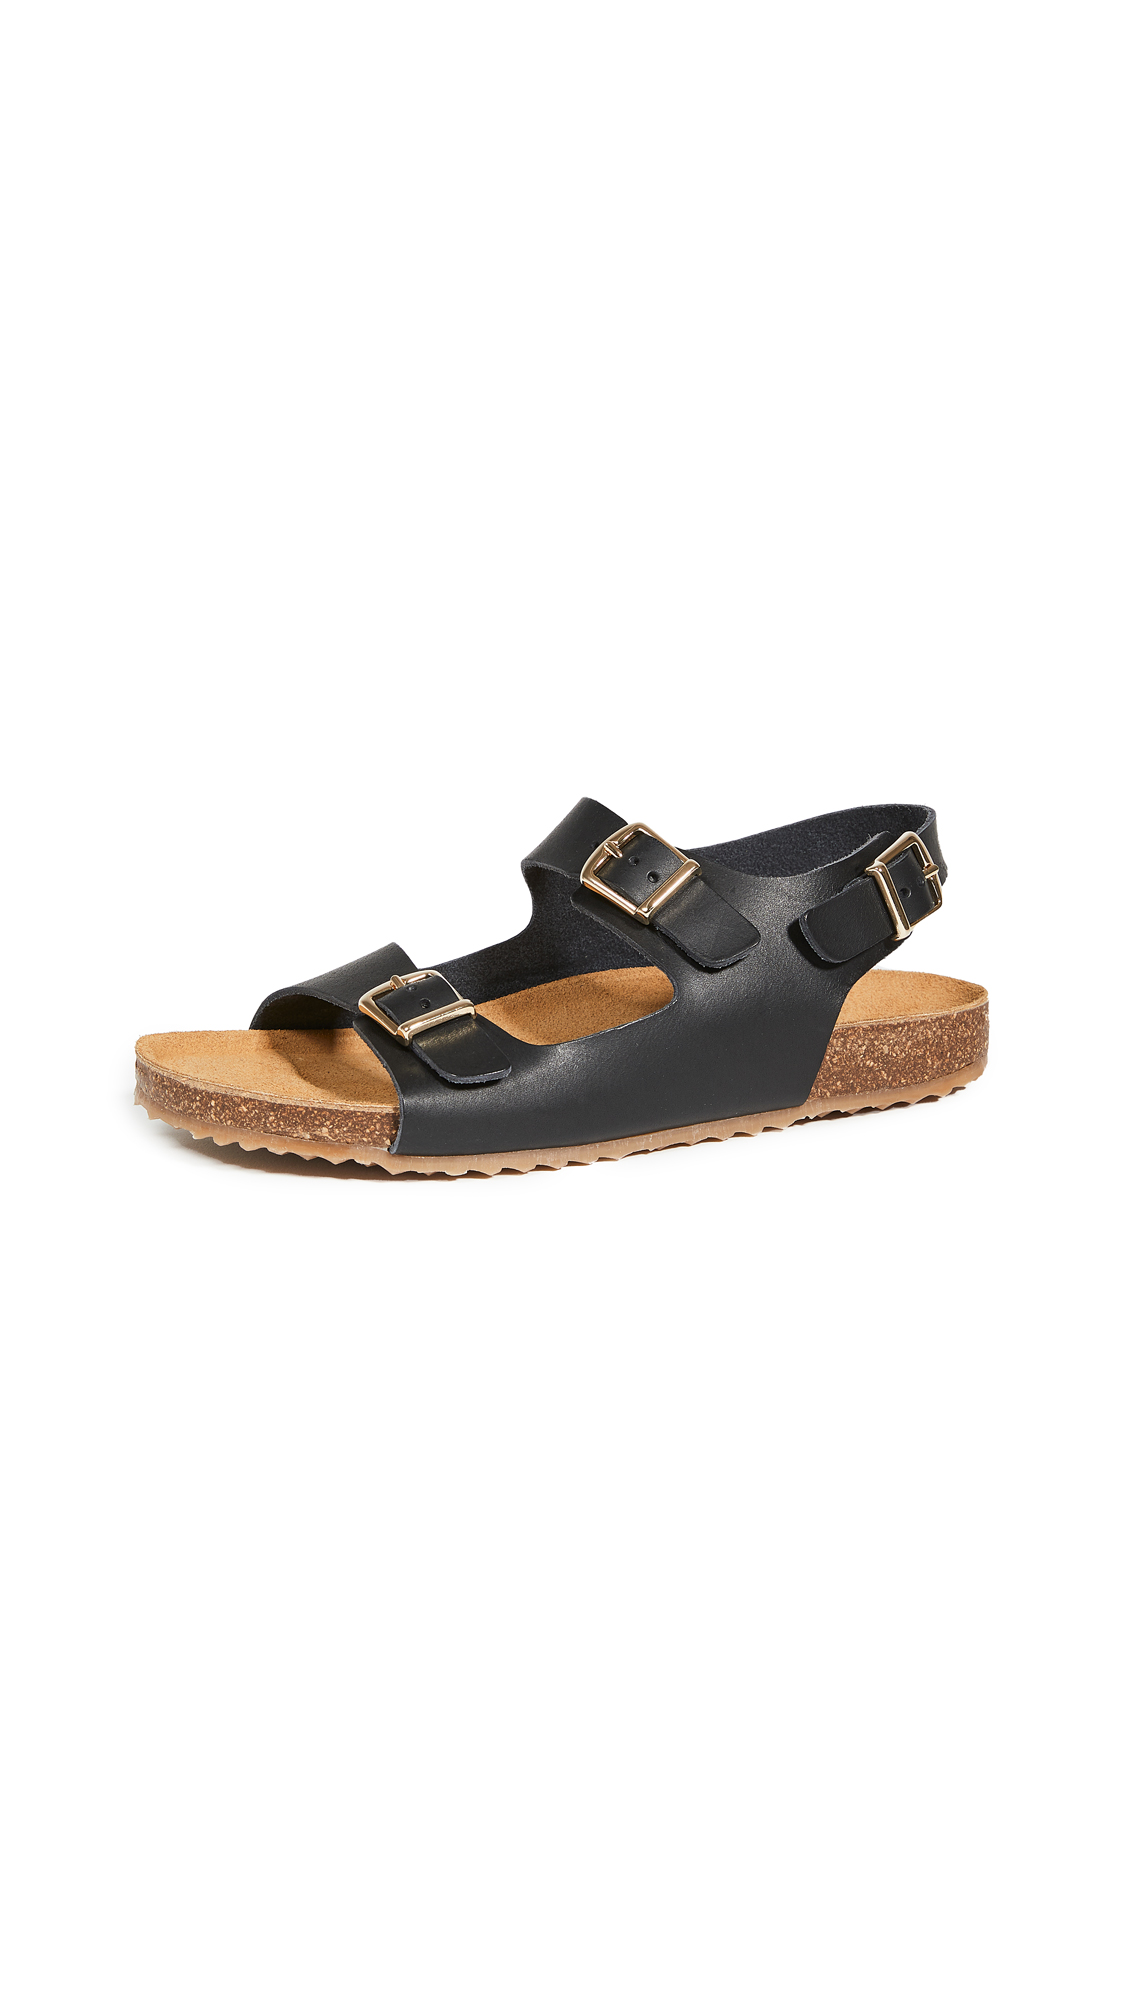 Mansur Gavriel Cloud Sandals